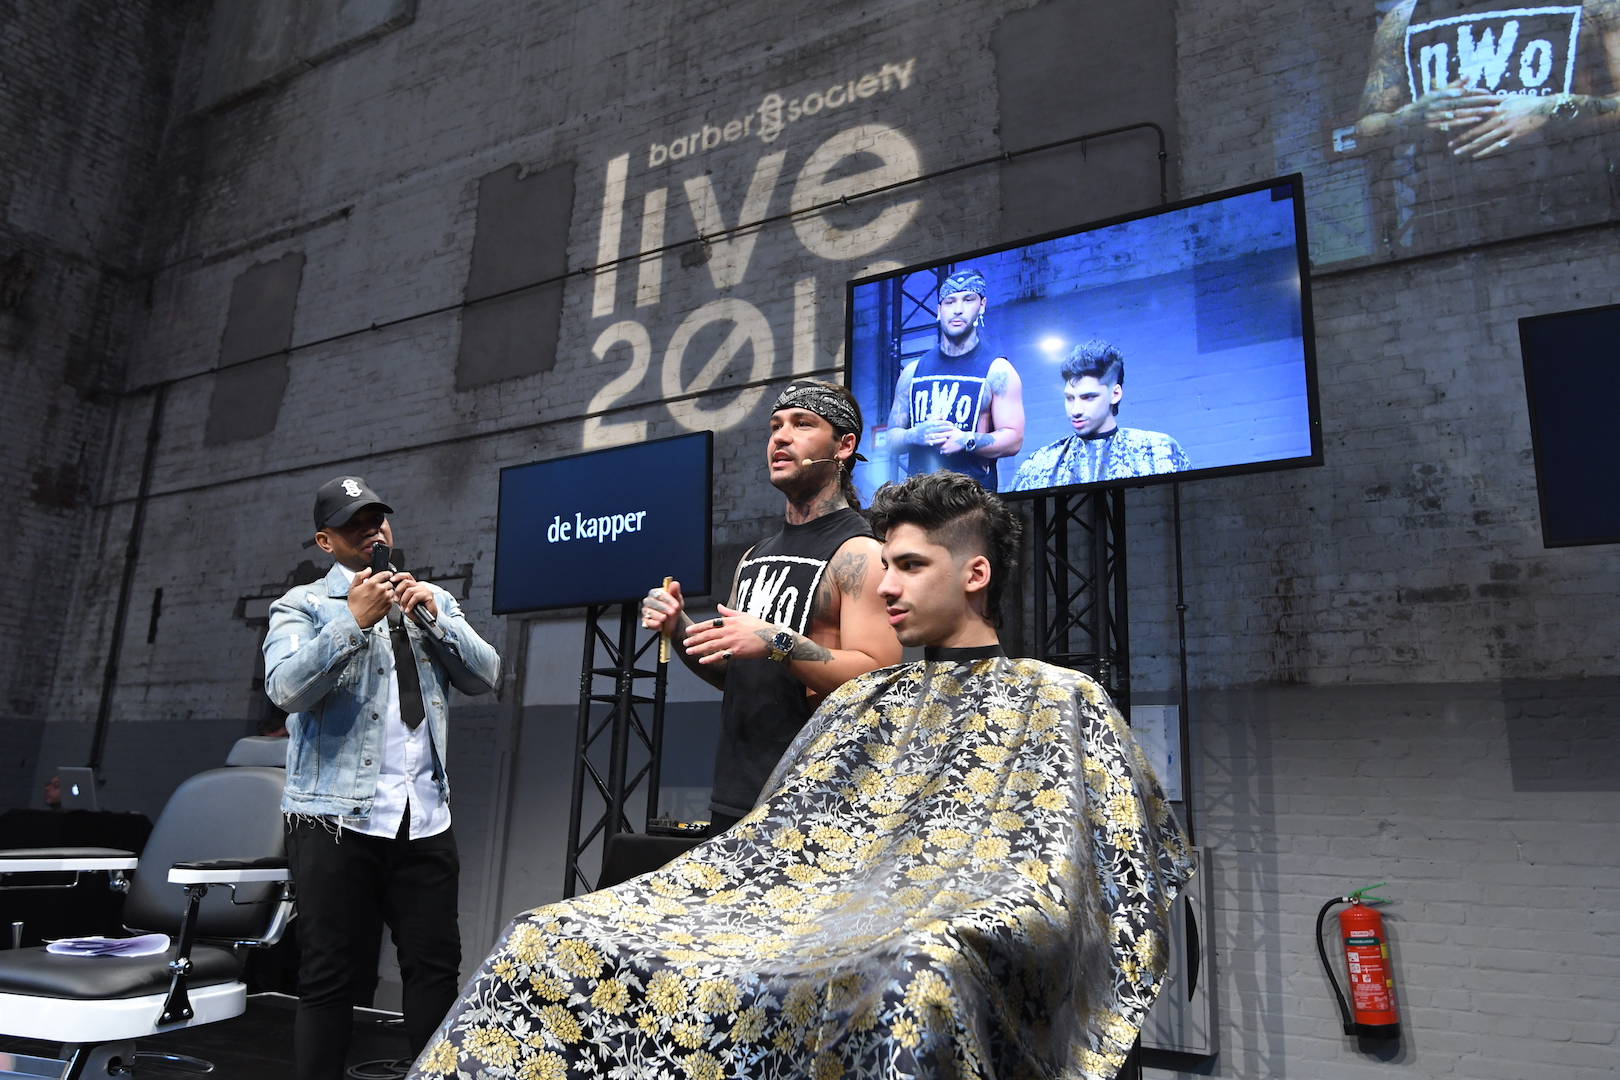 Gain inspiration at incredible shows of national and international barber talents. -